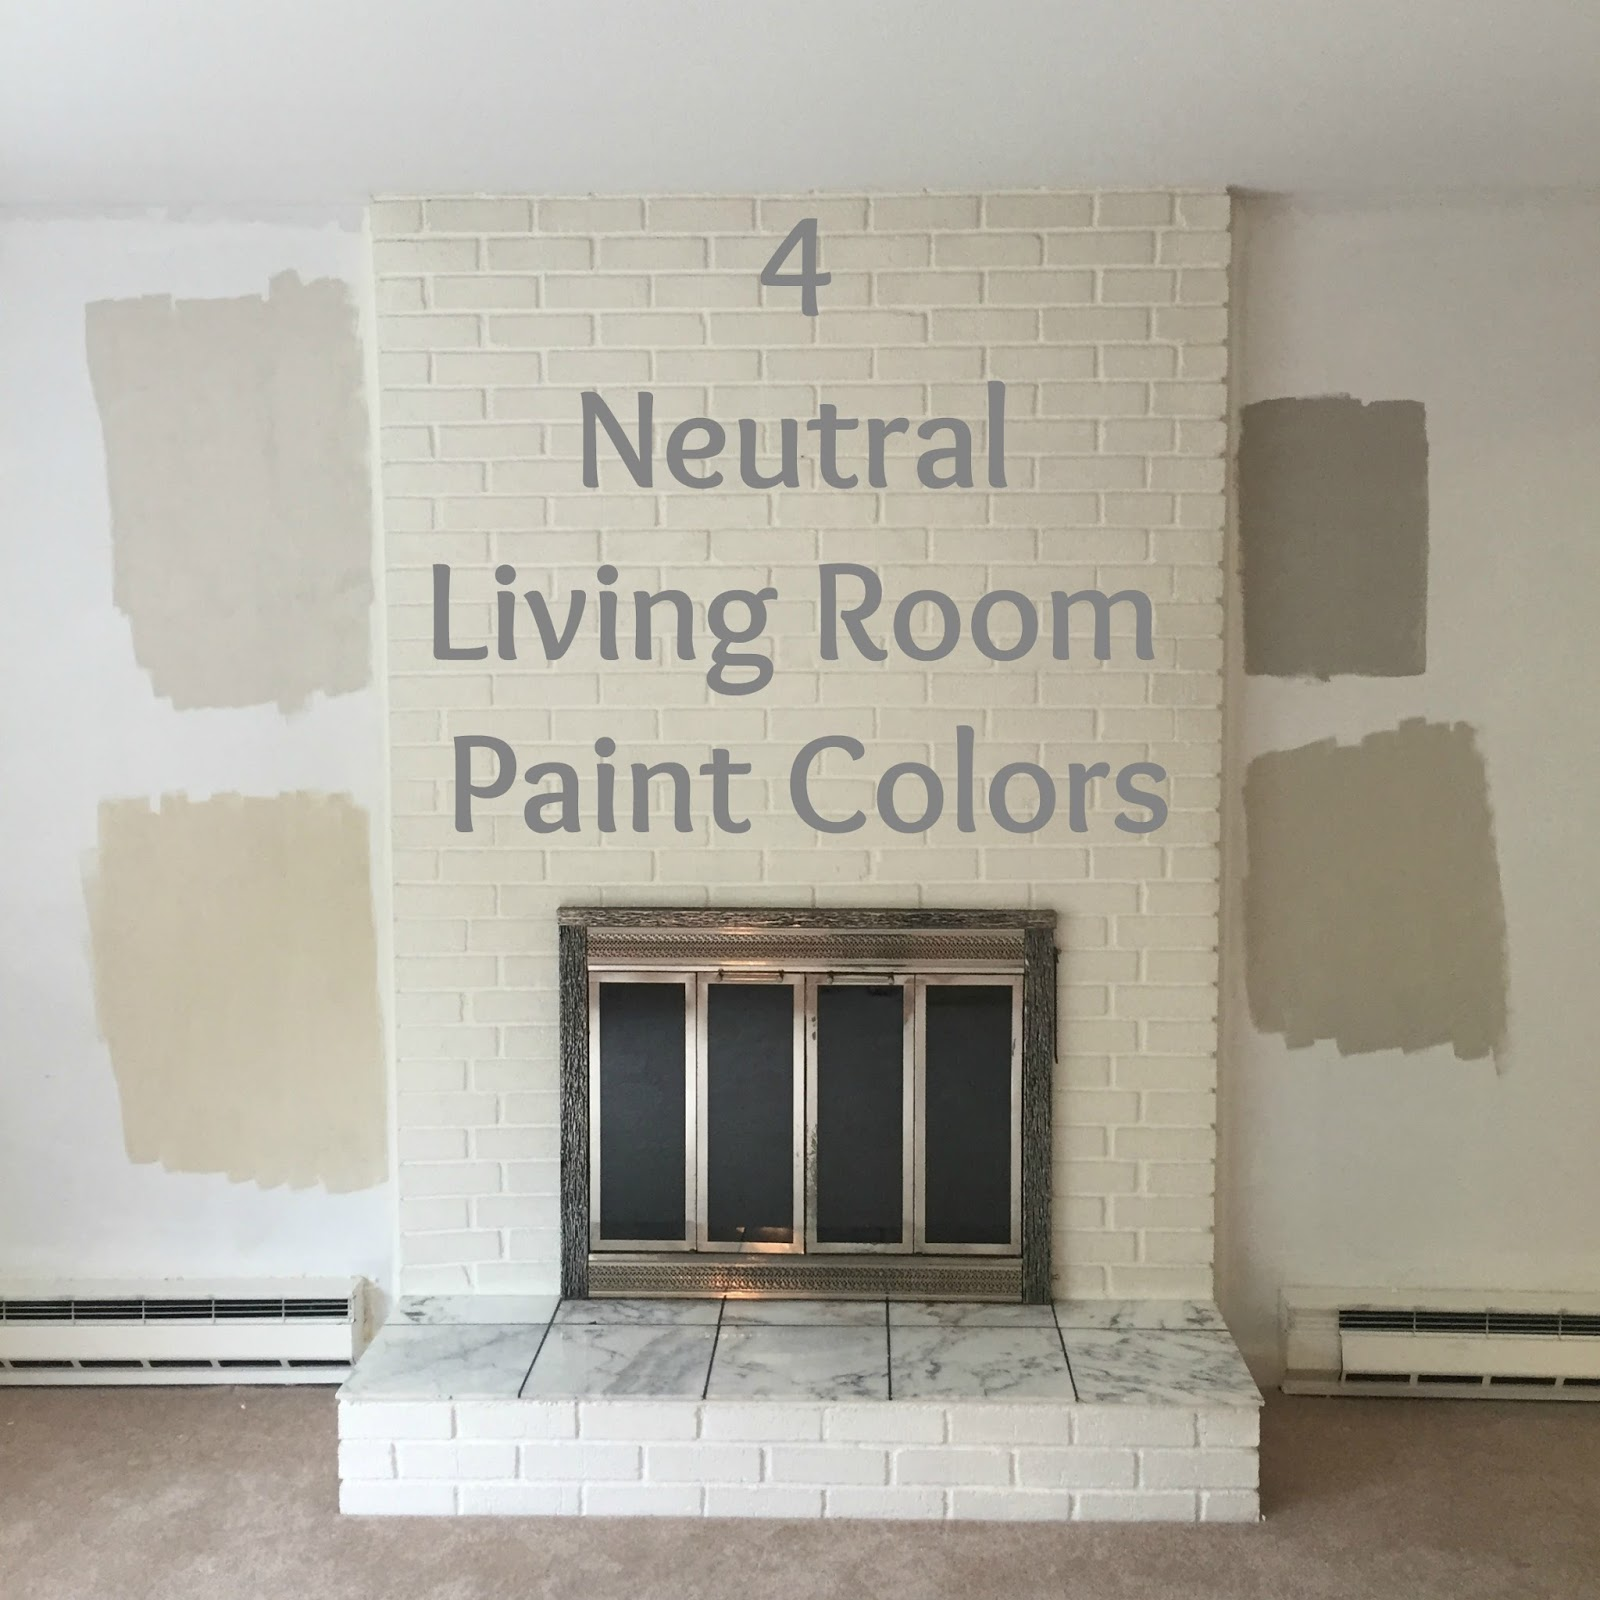 Drew danielle design 4 neutral living room paint colors for Neutral tone paint colors